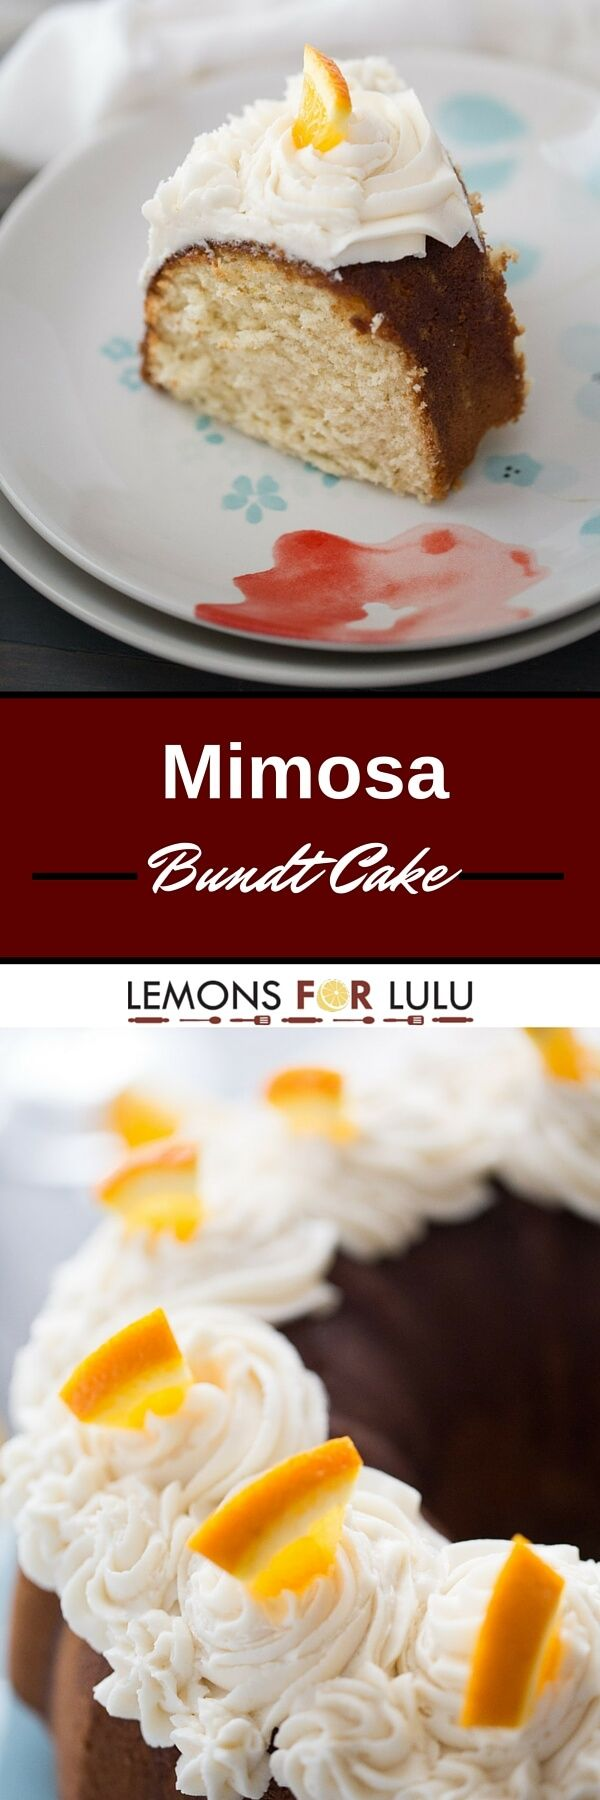 Love mimosas? Then this cake recipe is for you! This cake is made with both champagne and orange juice and topped with a creamy champagne buttercream!